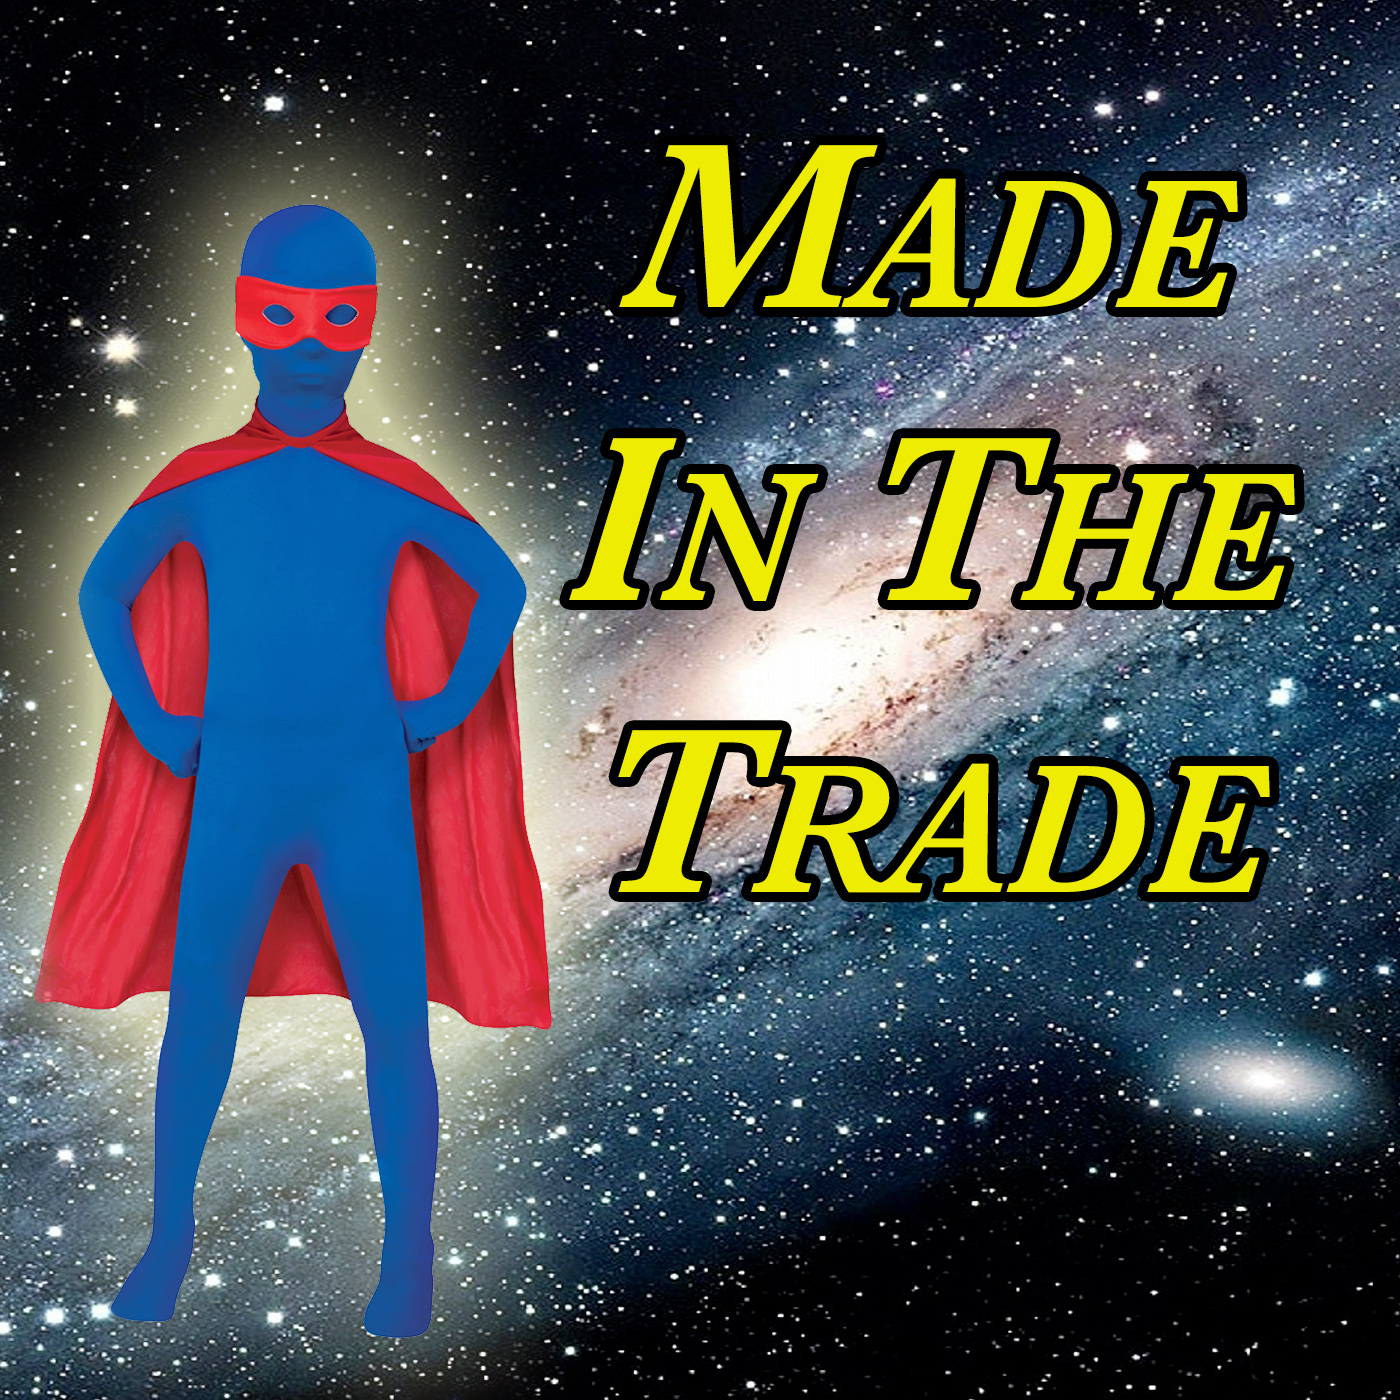 Orlando Podcasts » Made in the Trade